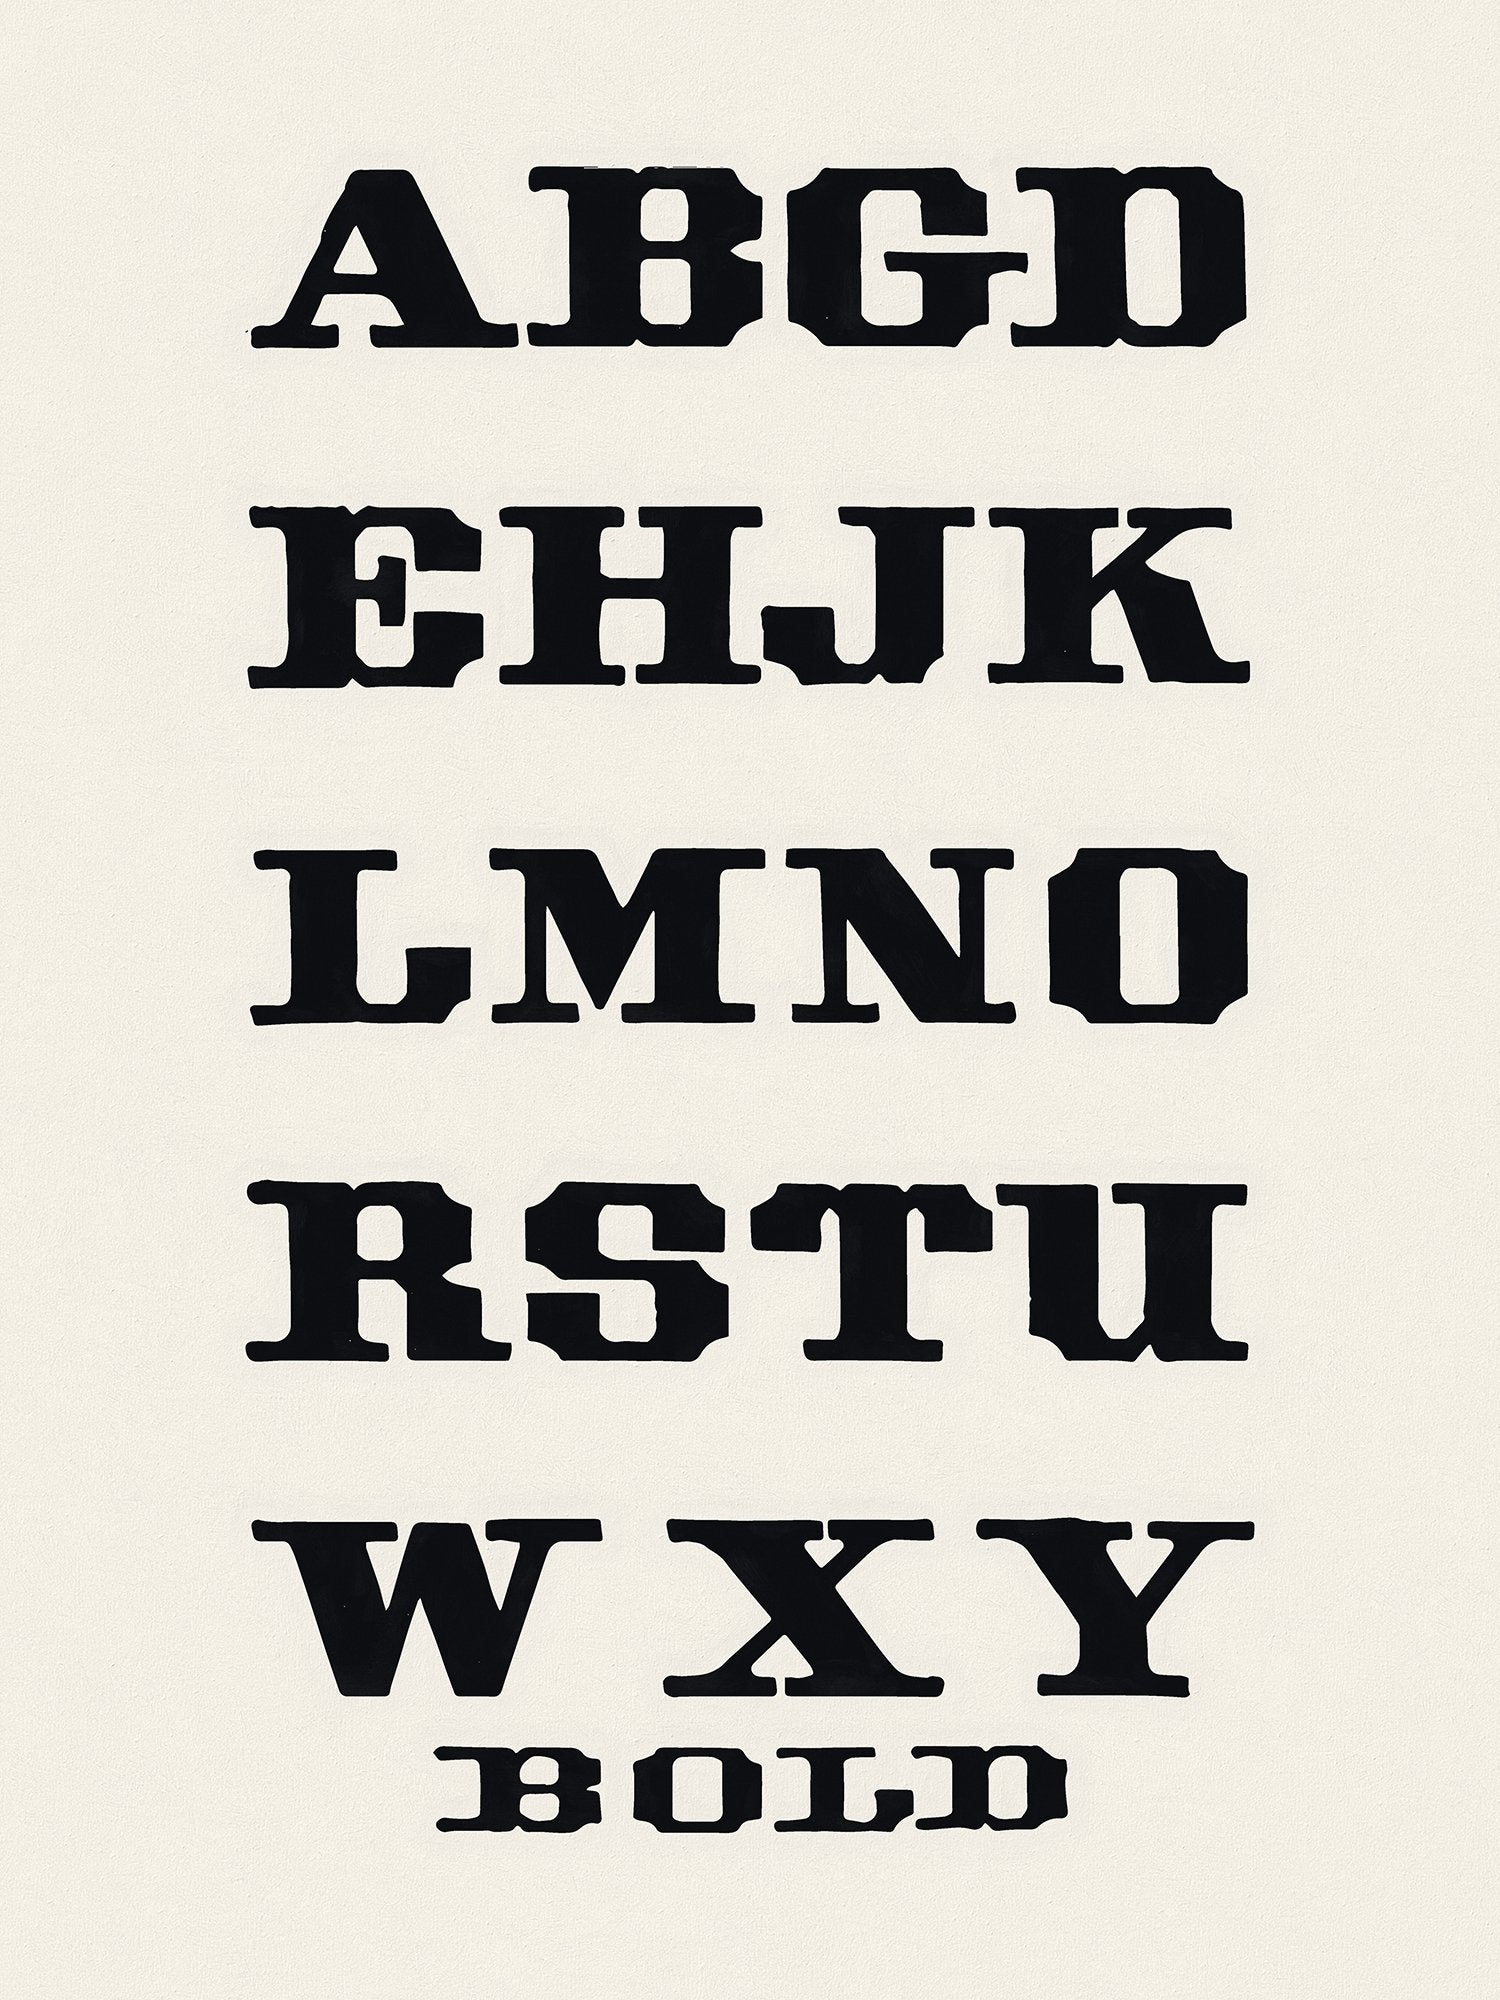 Studio Handbook No. 246, New Alphabets by Welo, Reworked, Series 2